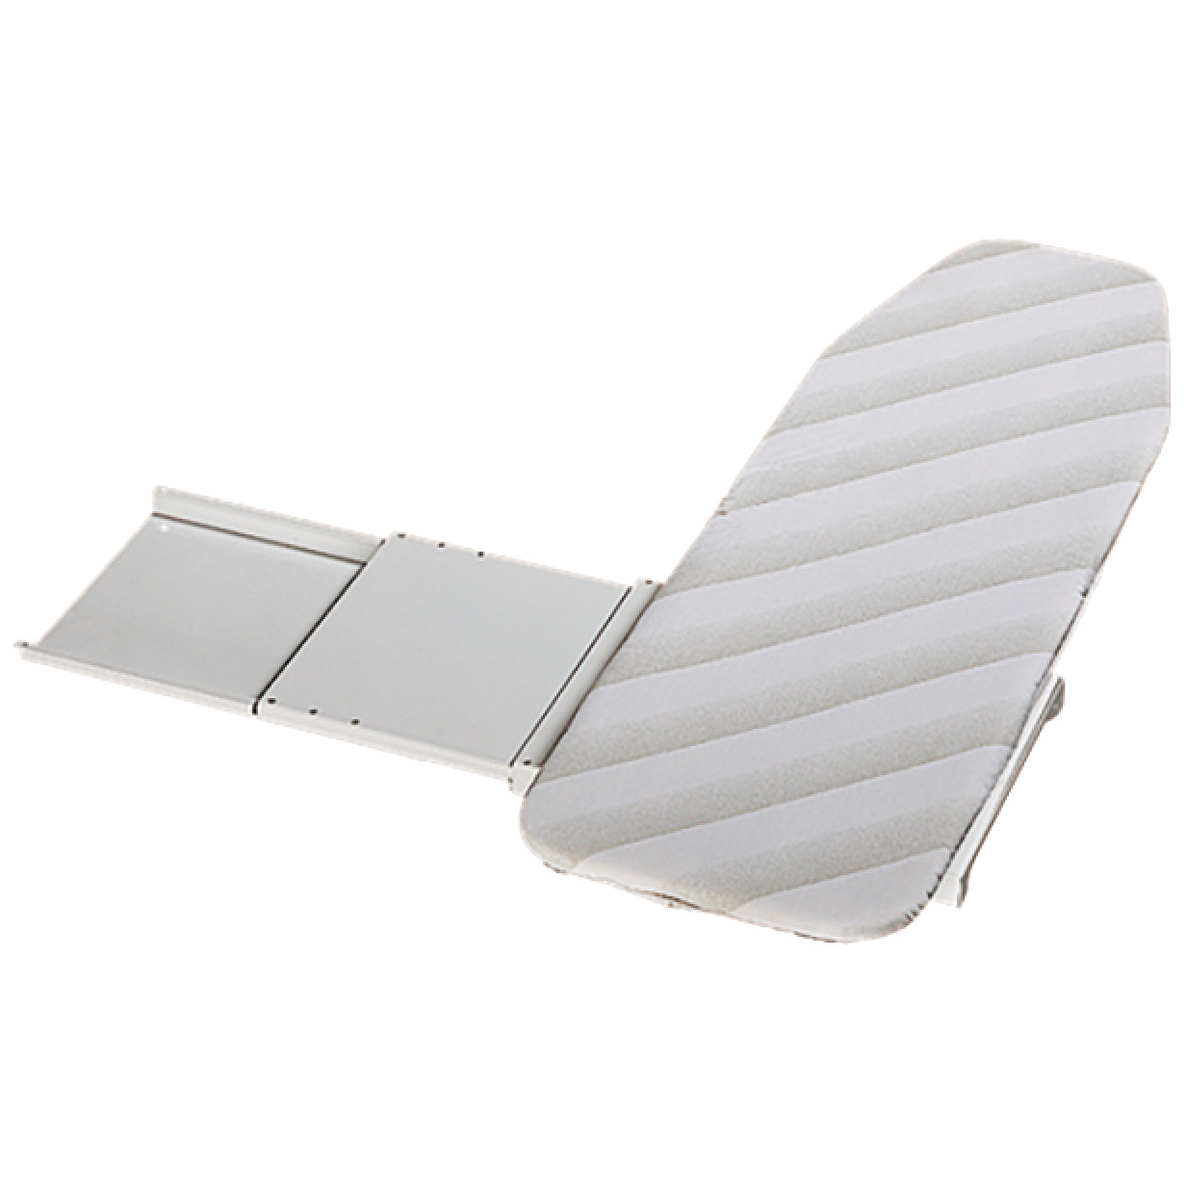 Shelf-Mounted Ironing Board